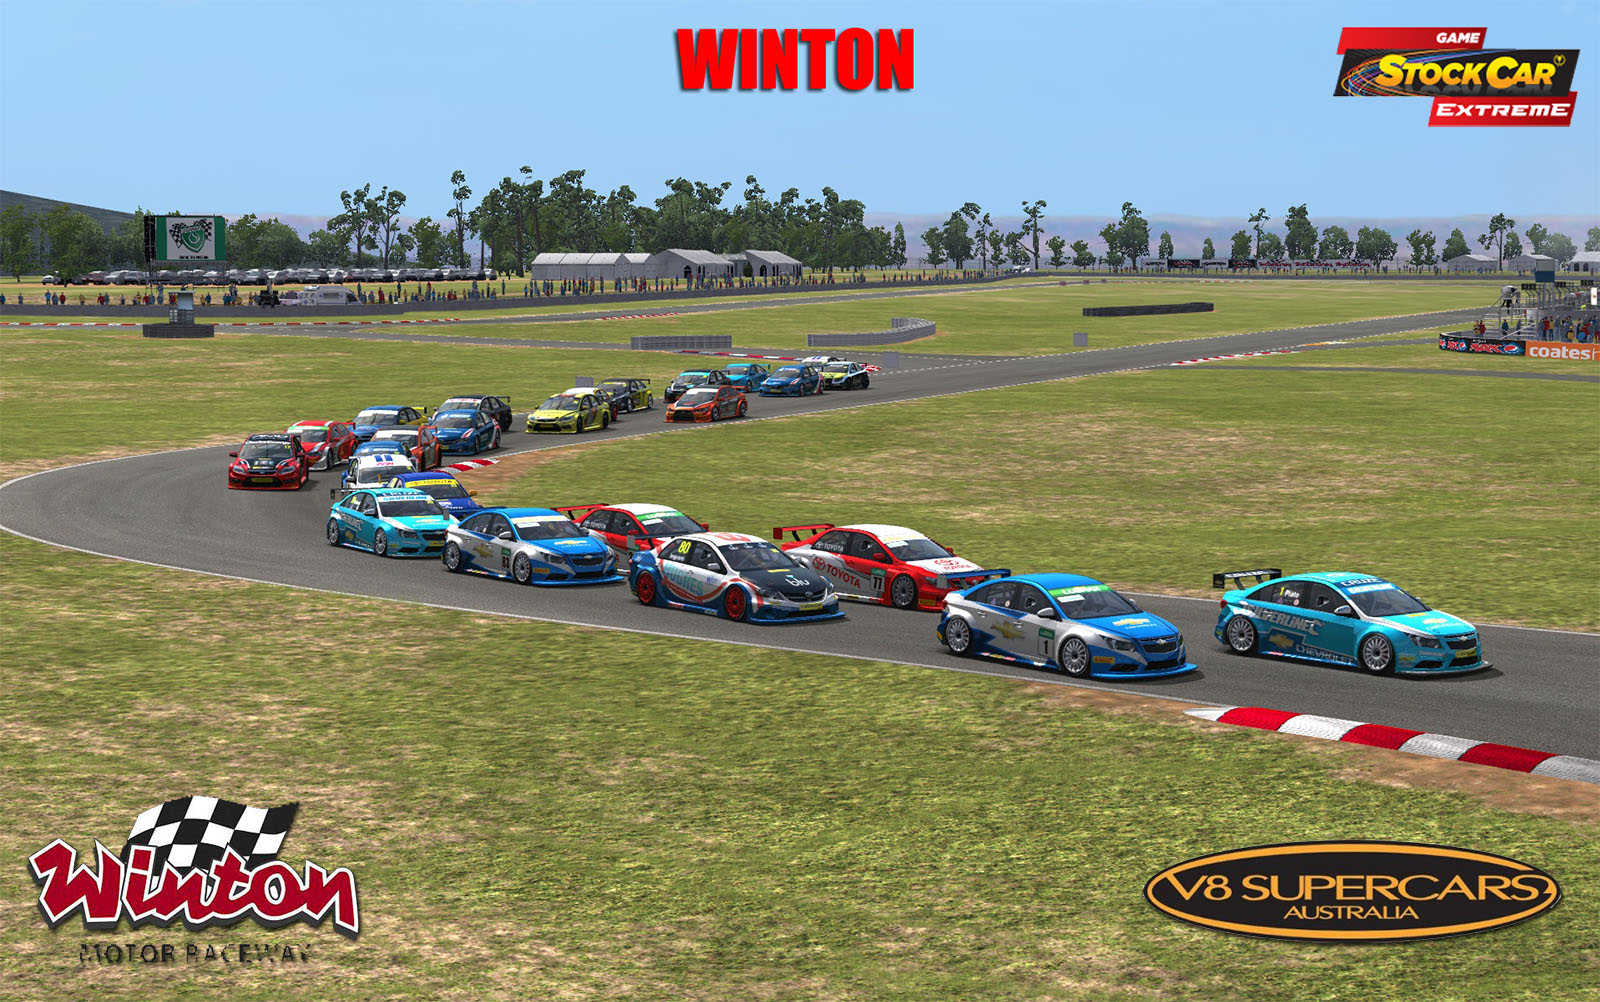 GSC 2013 Winton (V8 Supercars) v2.1